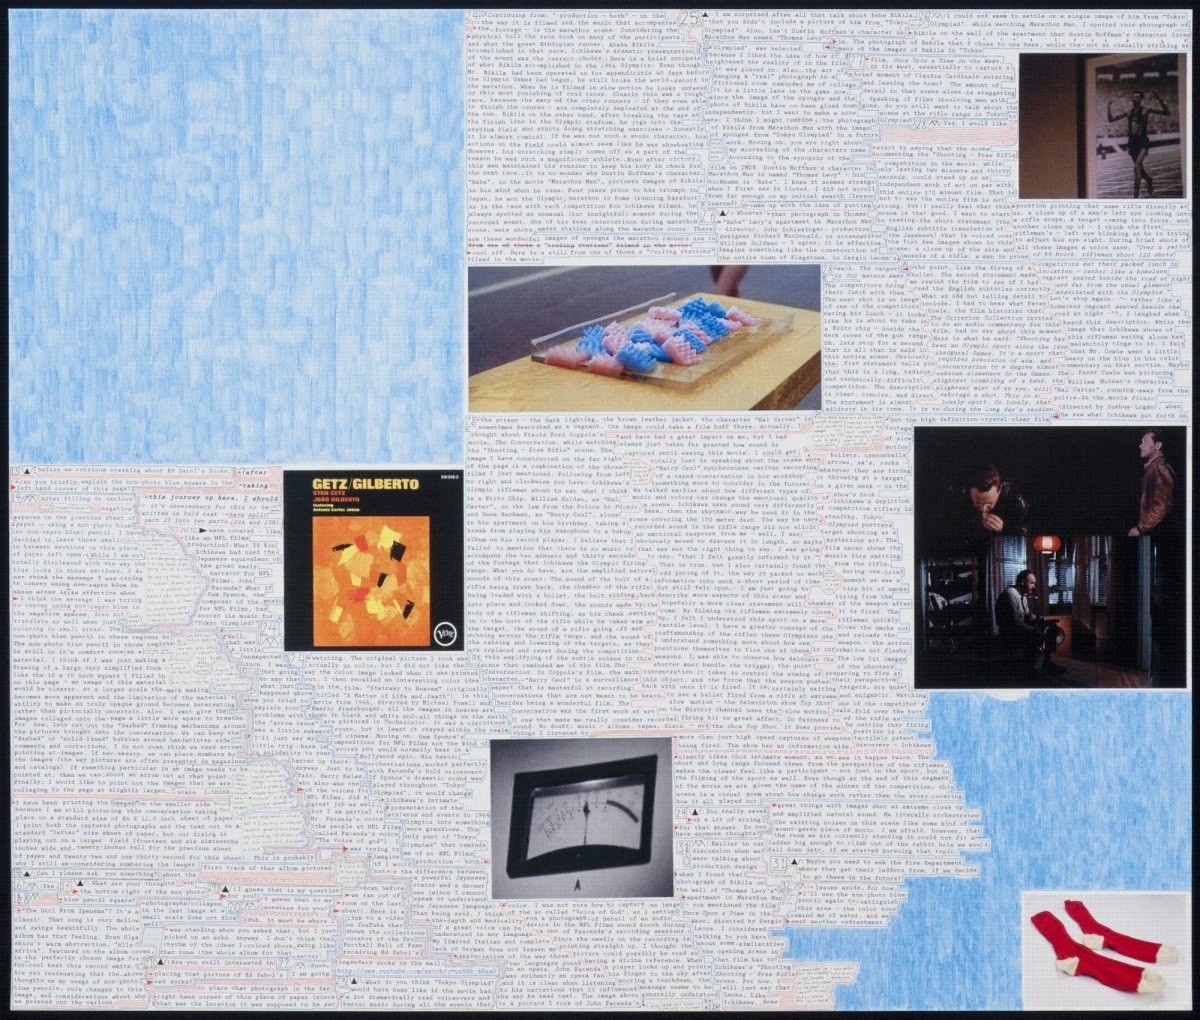 Matthew Sontheimer, Shooting Games (right), 2012, diptych, mixed media on paper, Right panel: 22 x 26 inches